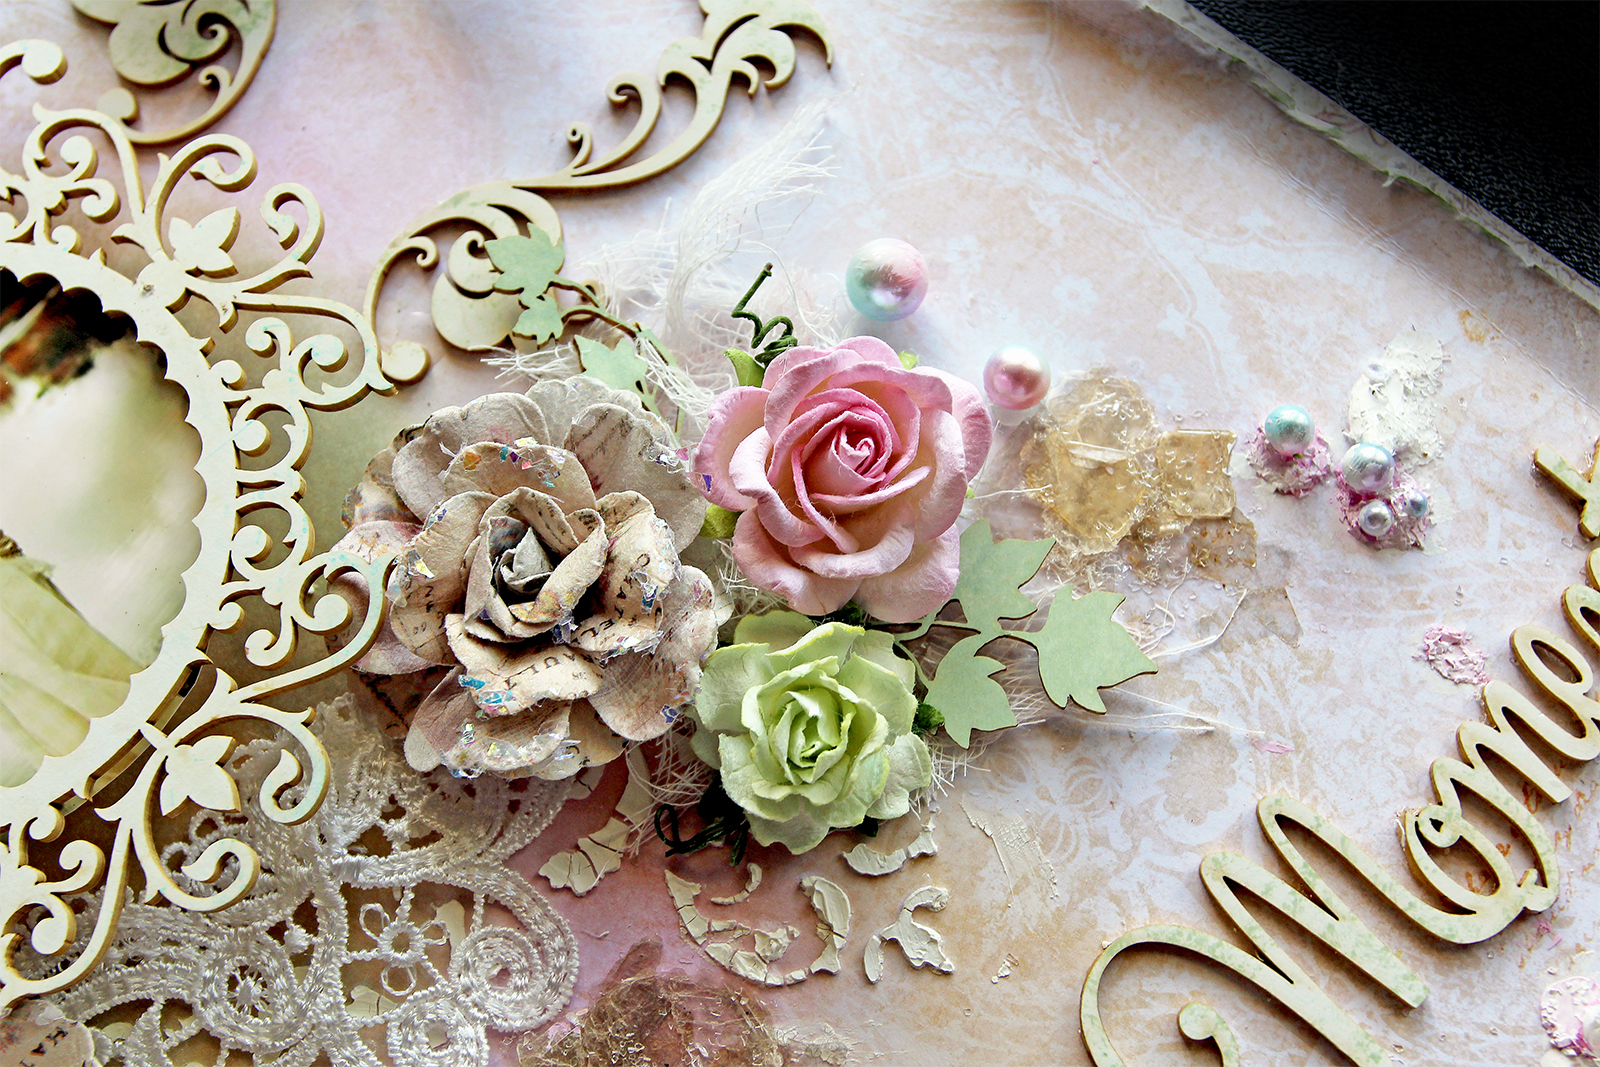 Reneabouquets August 2018 Vintage Story Flower Shabby Rose 3 Inked Some Beautiful Board Laser Cut Chipboard Ivy Vine Tuck Ins Them Apart And Tucked In I Also One Of My Handcrafted Love